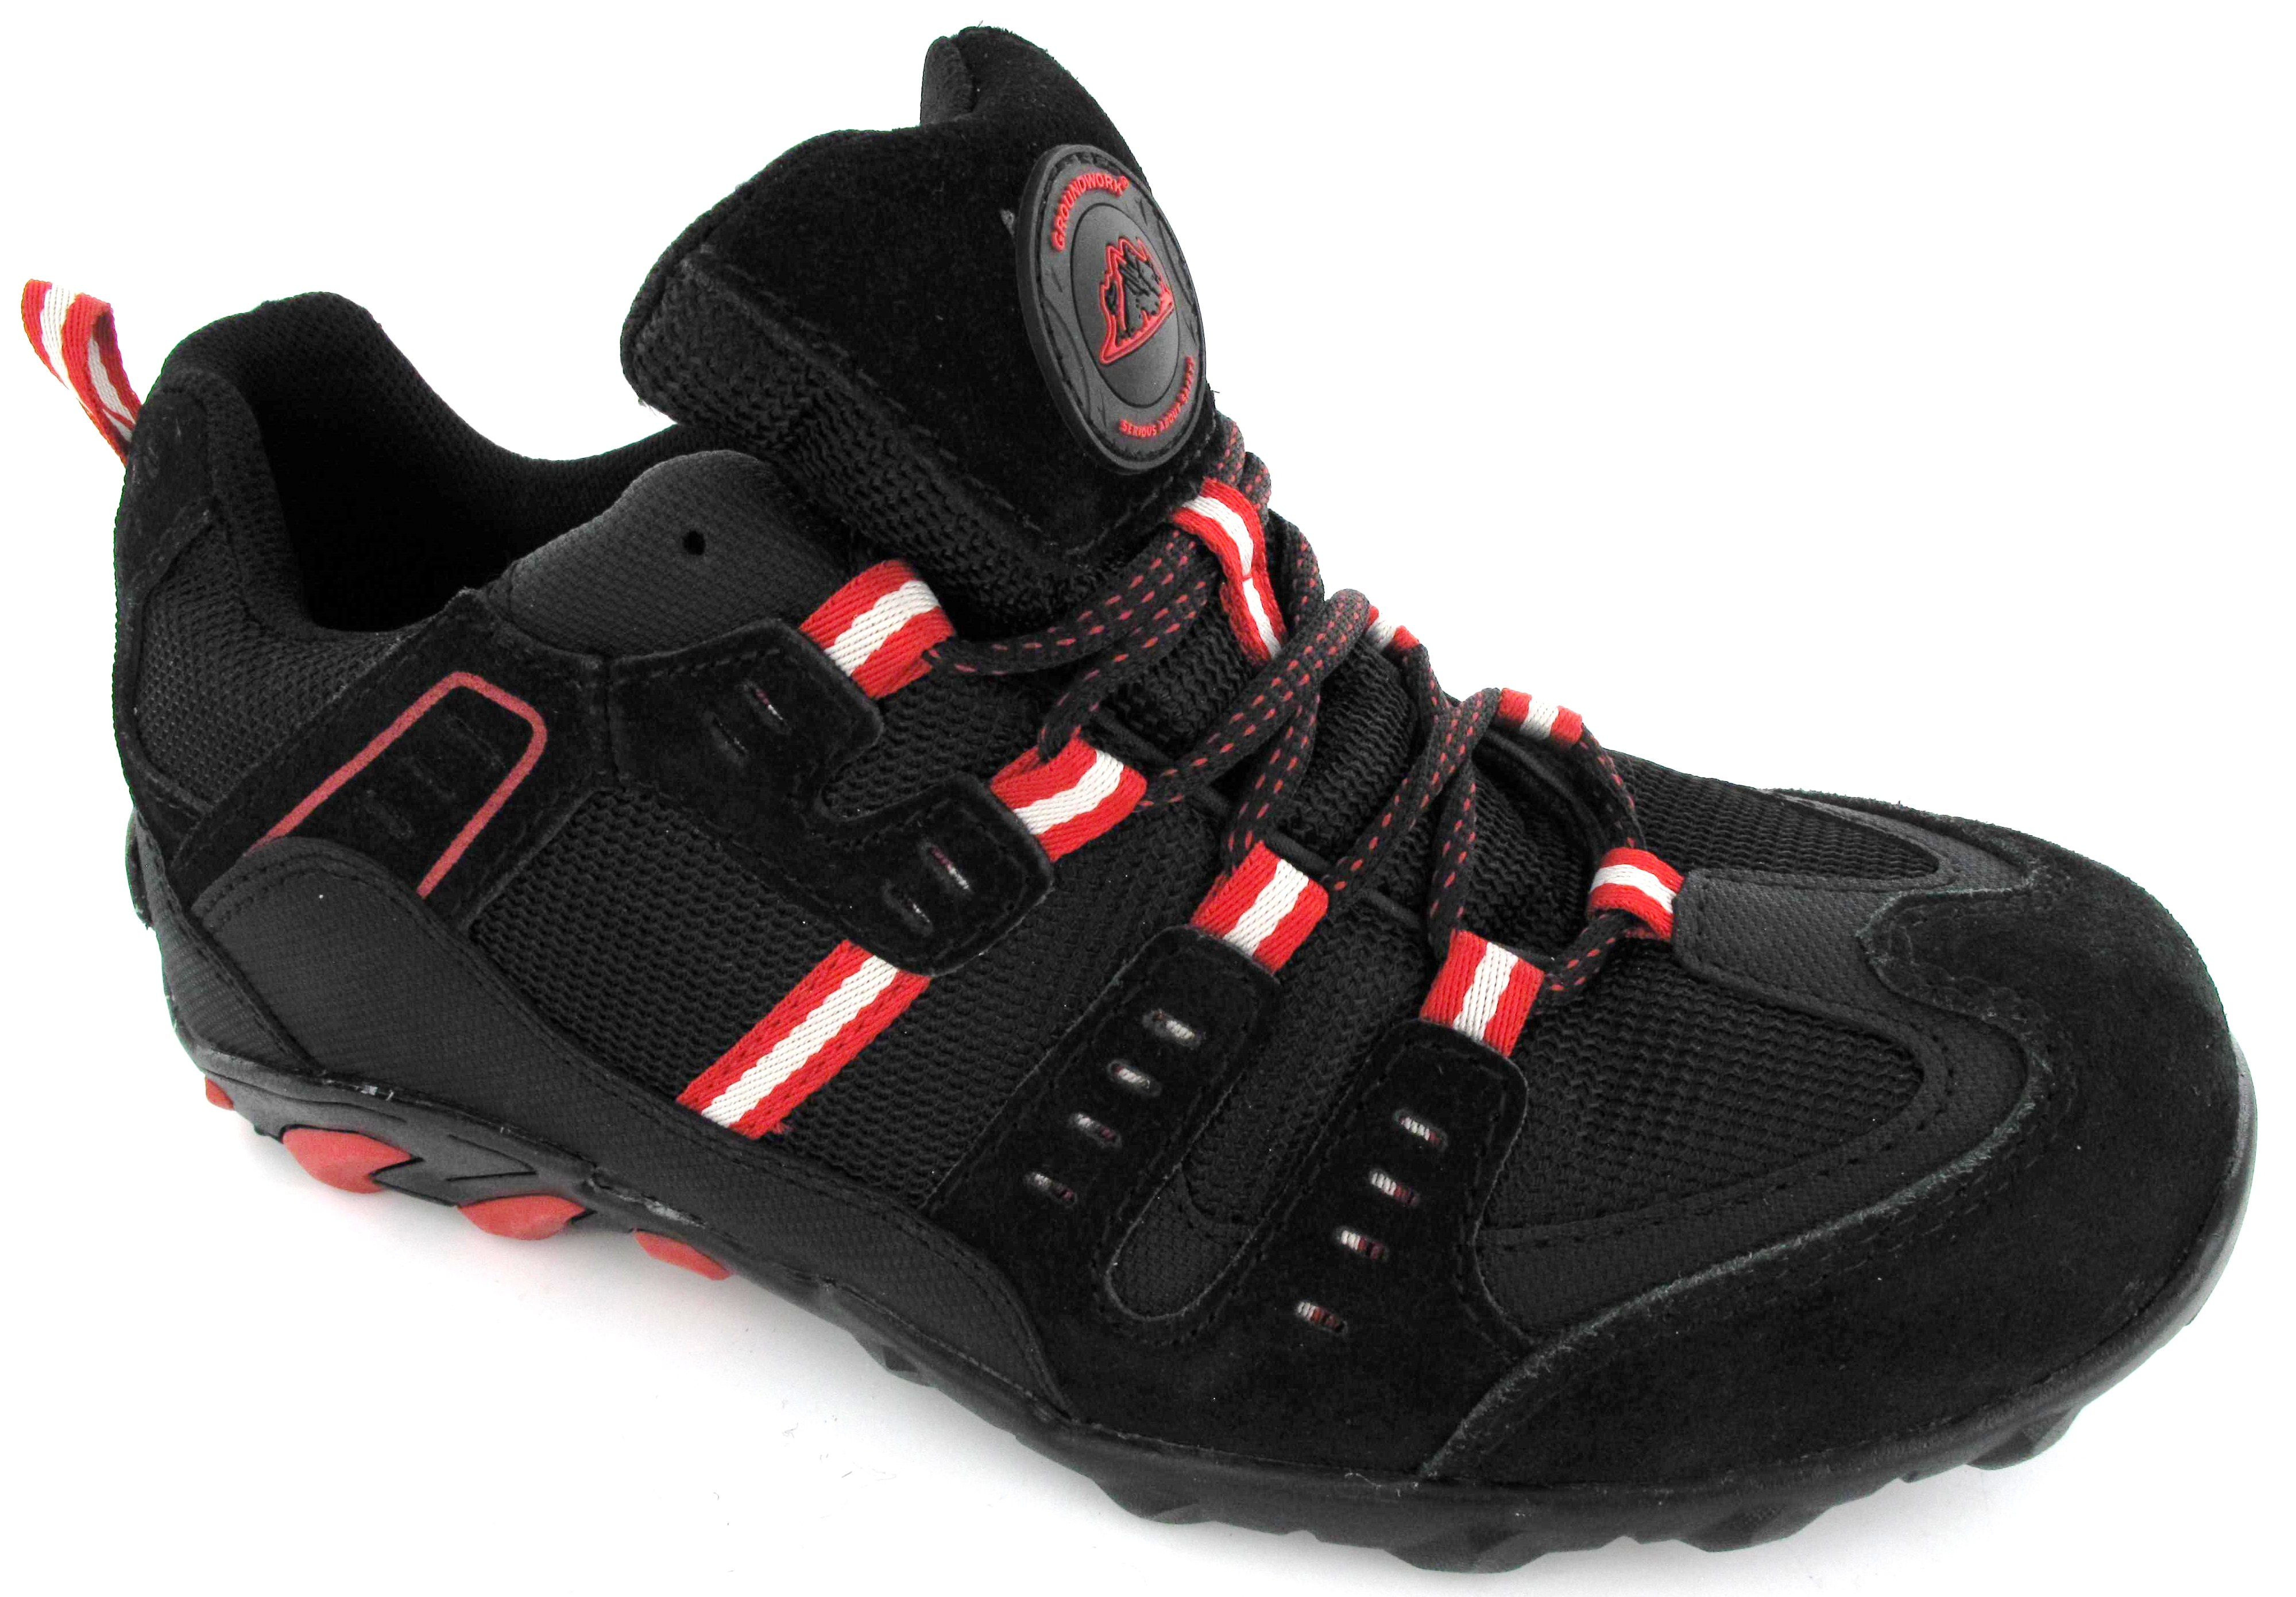 MENS-SAFETY-NEW-LIGHTWEIGHT-STEEL-TOE-CAP-WORK-TRAINERS-BOOTS-SHOES-UK-SIZE-7-11